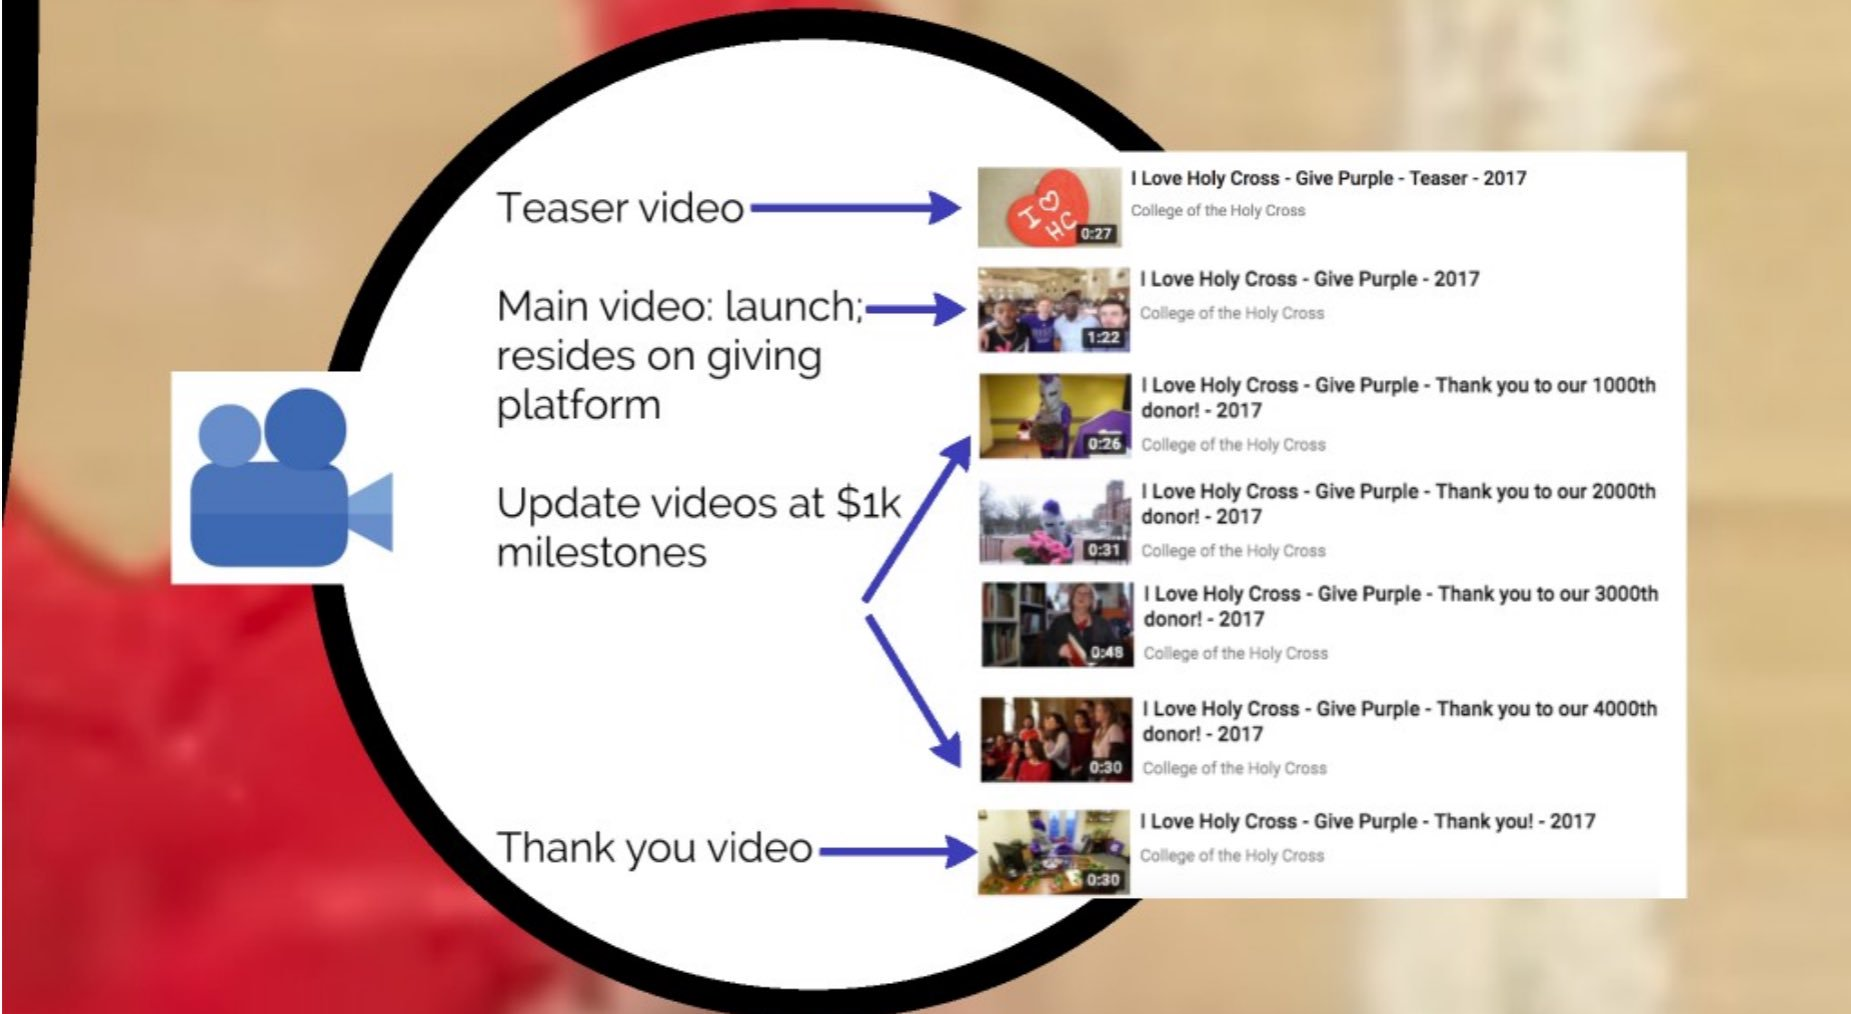 Holy Cross developed a timeline for releasing videos promoting and celebrating their campaign.